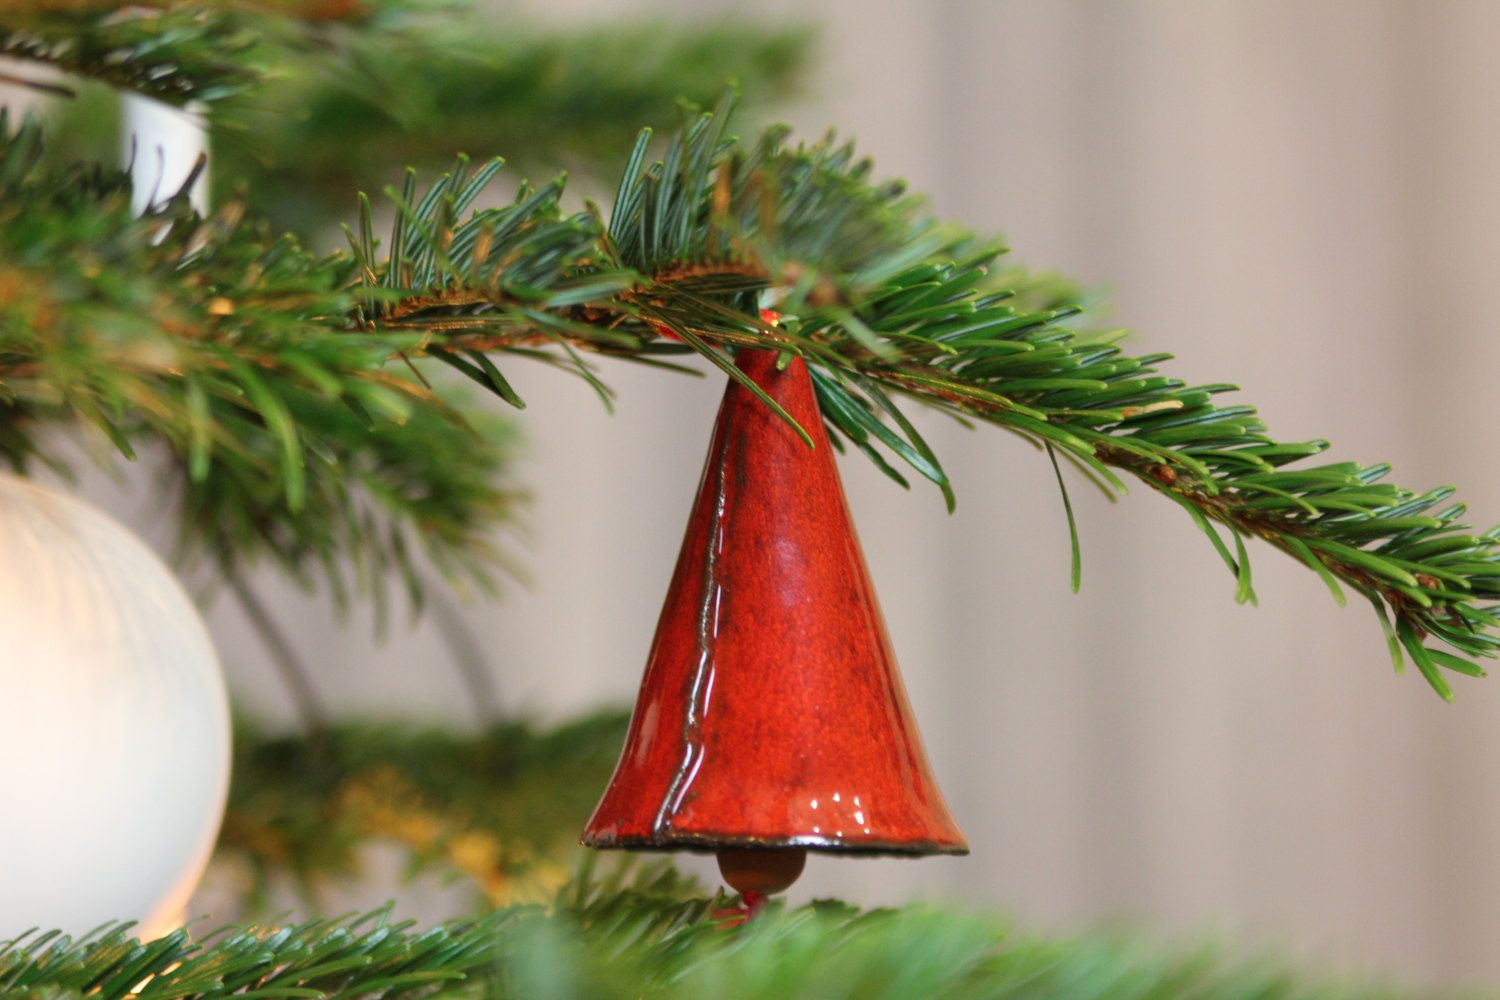 The bell is pottery by hand gang burned to hang out with red